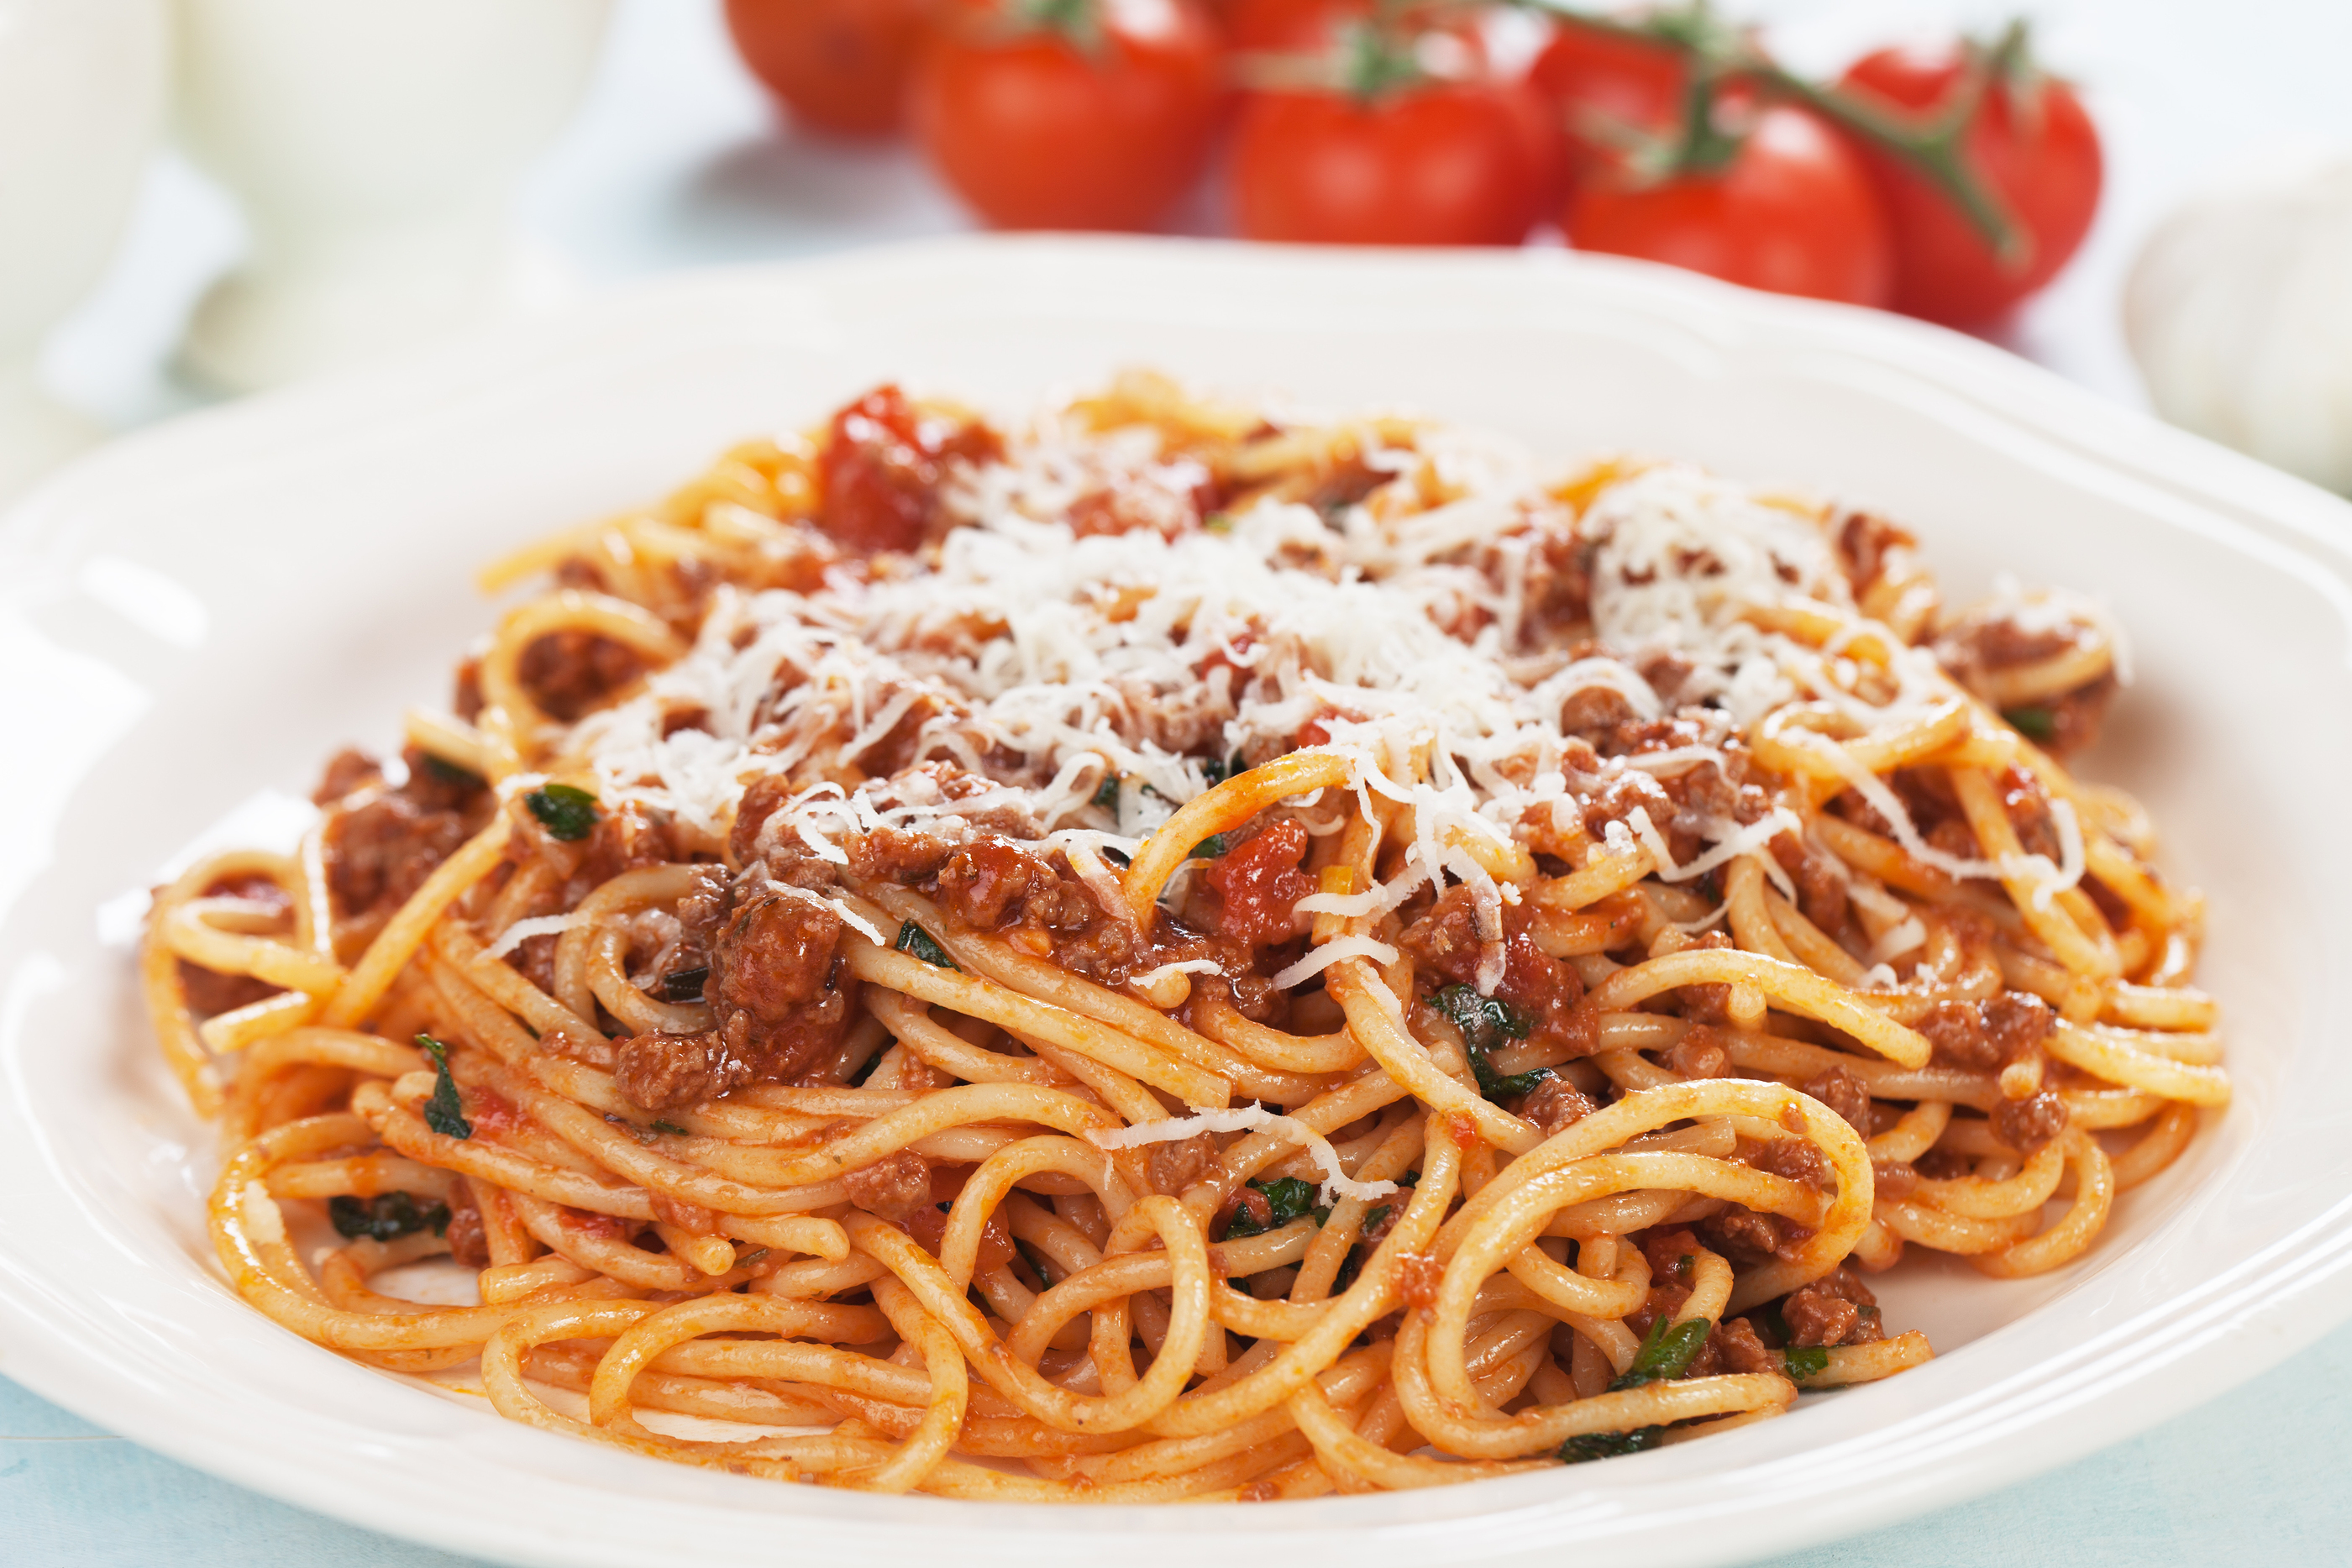 Italian spaghetti pasta in ground beef and tomato sauce bolognes